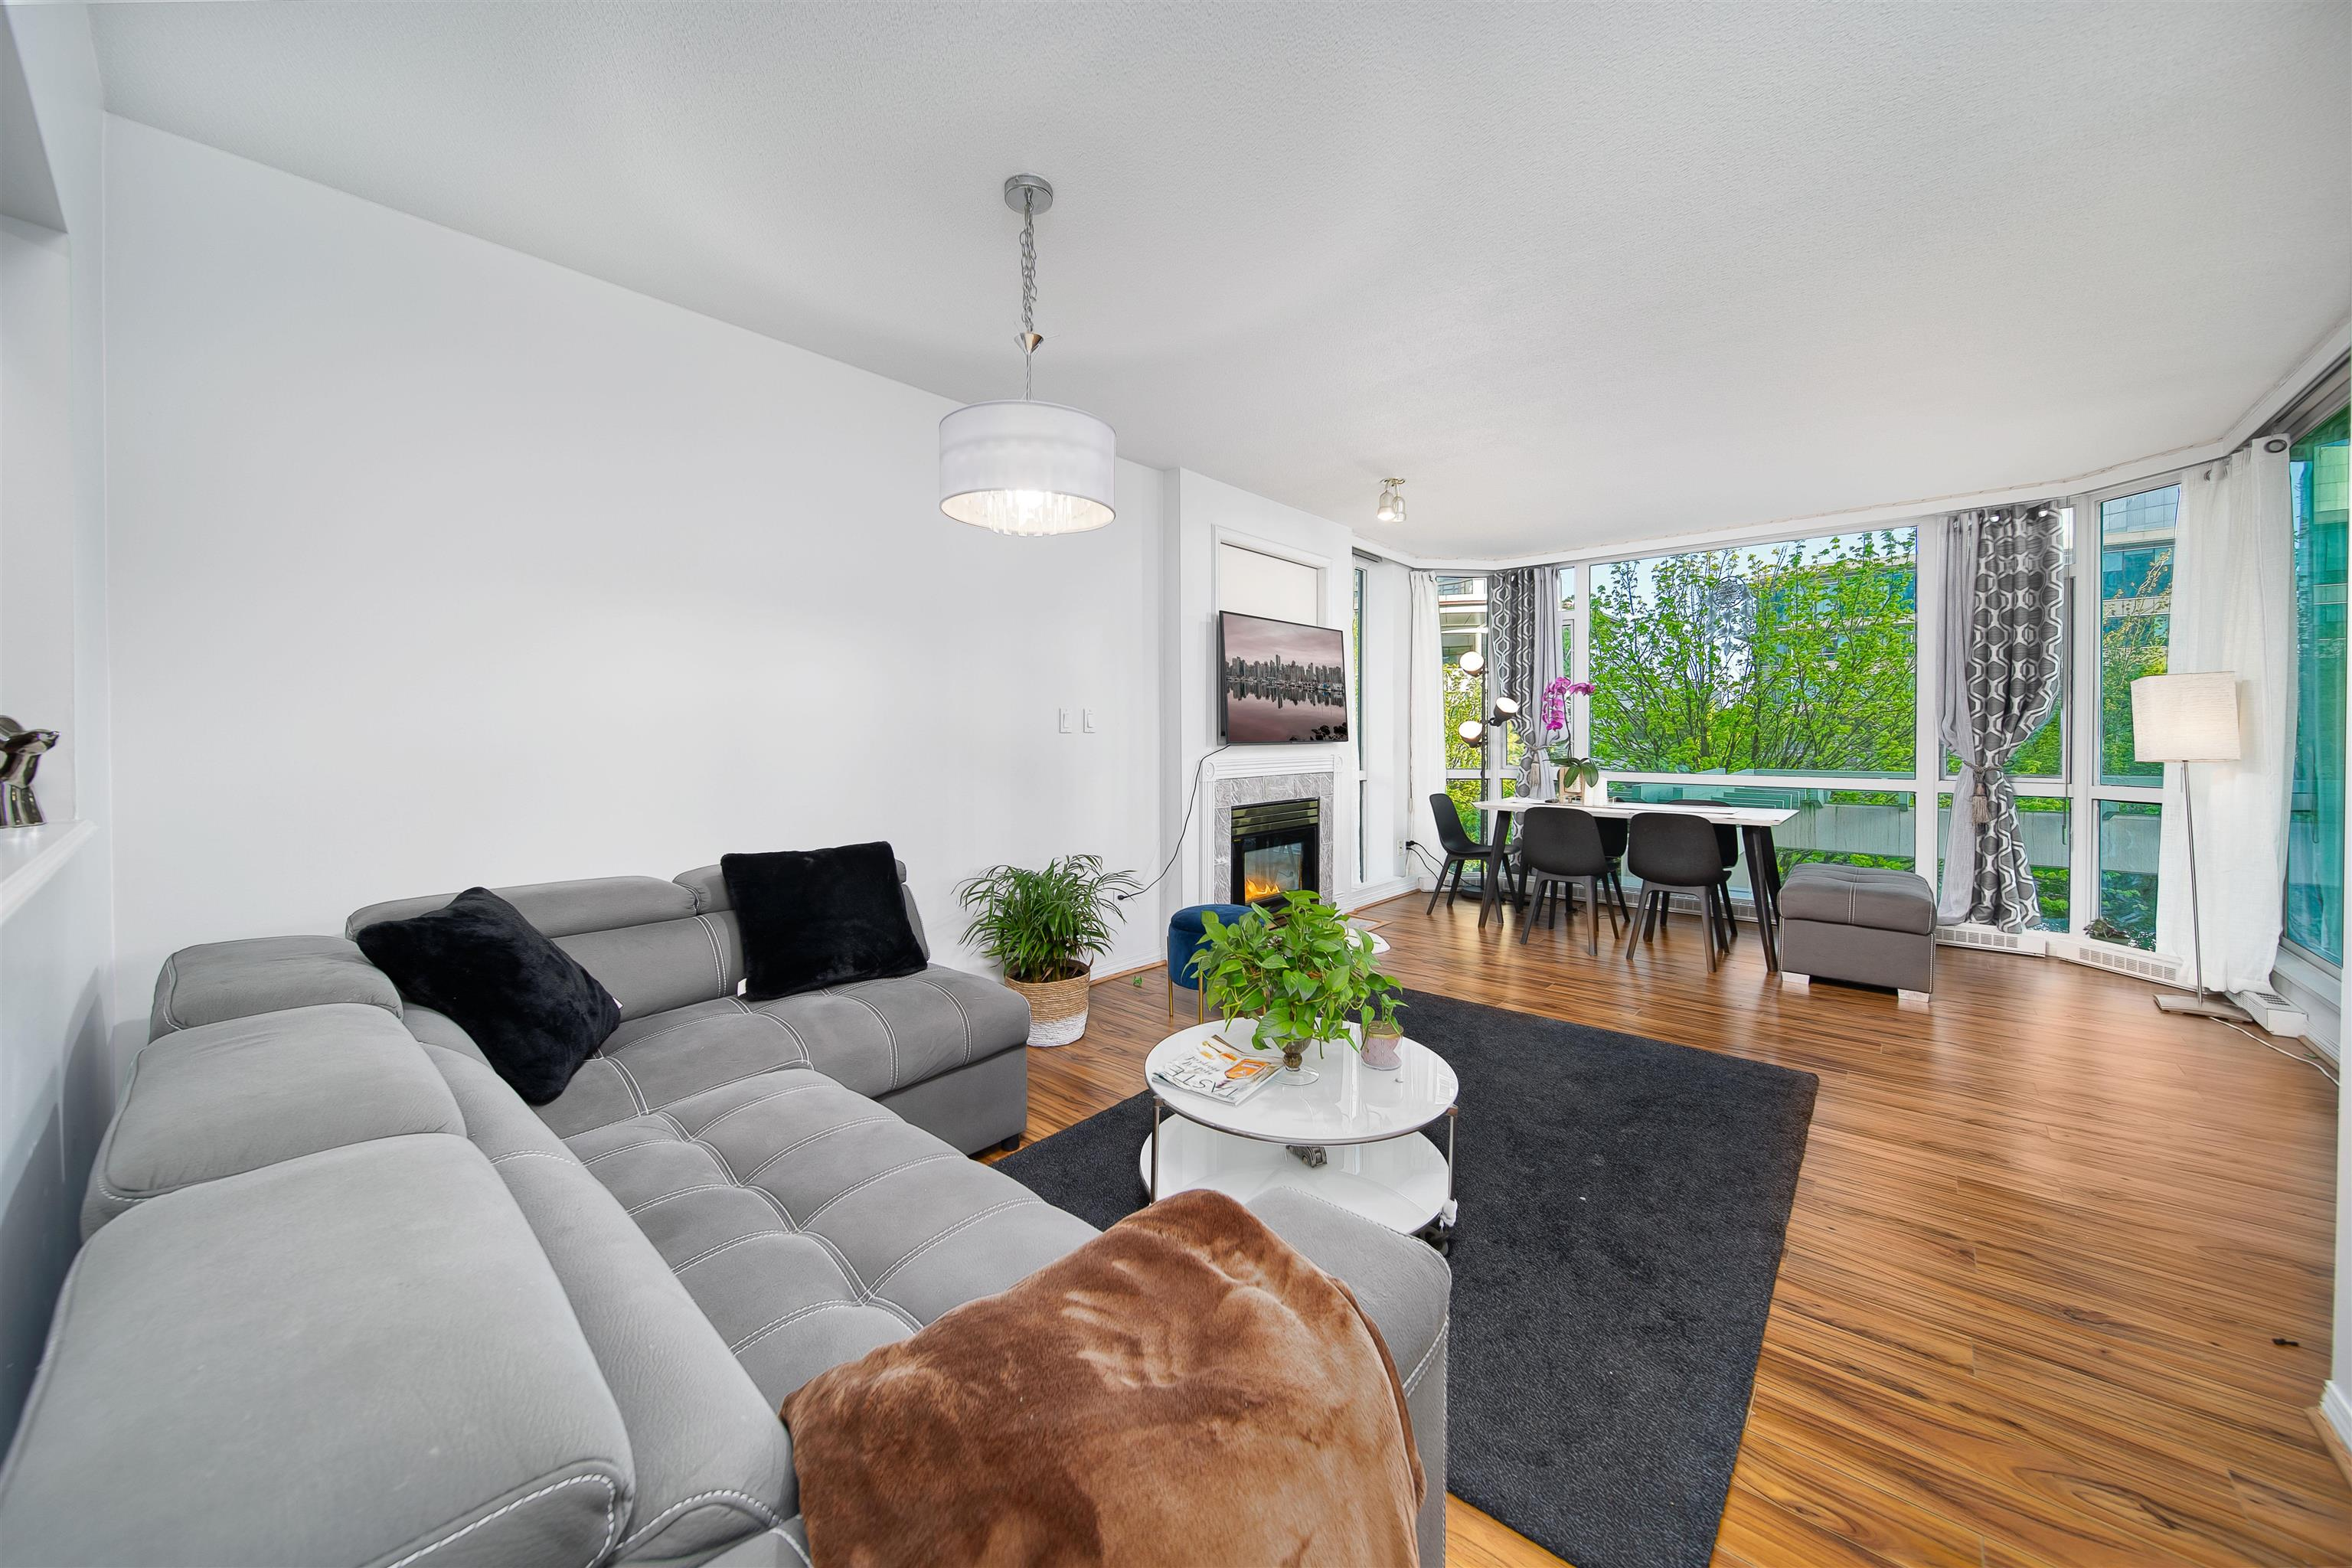 303 140 E 14TH STREET - Central Lonsdale Apartment/Condo for sale, 1 Bedroom (R2618094) - #7